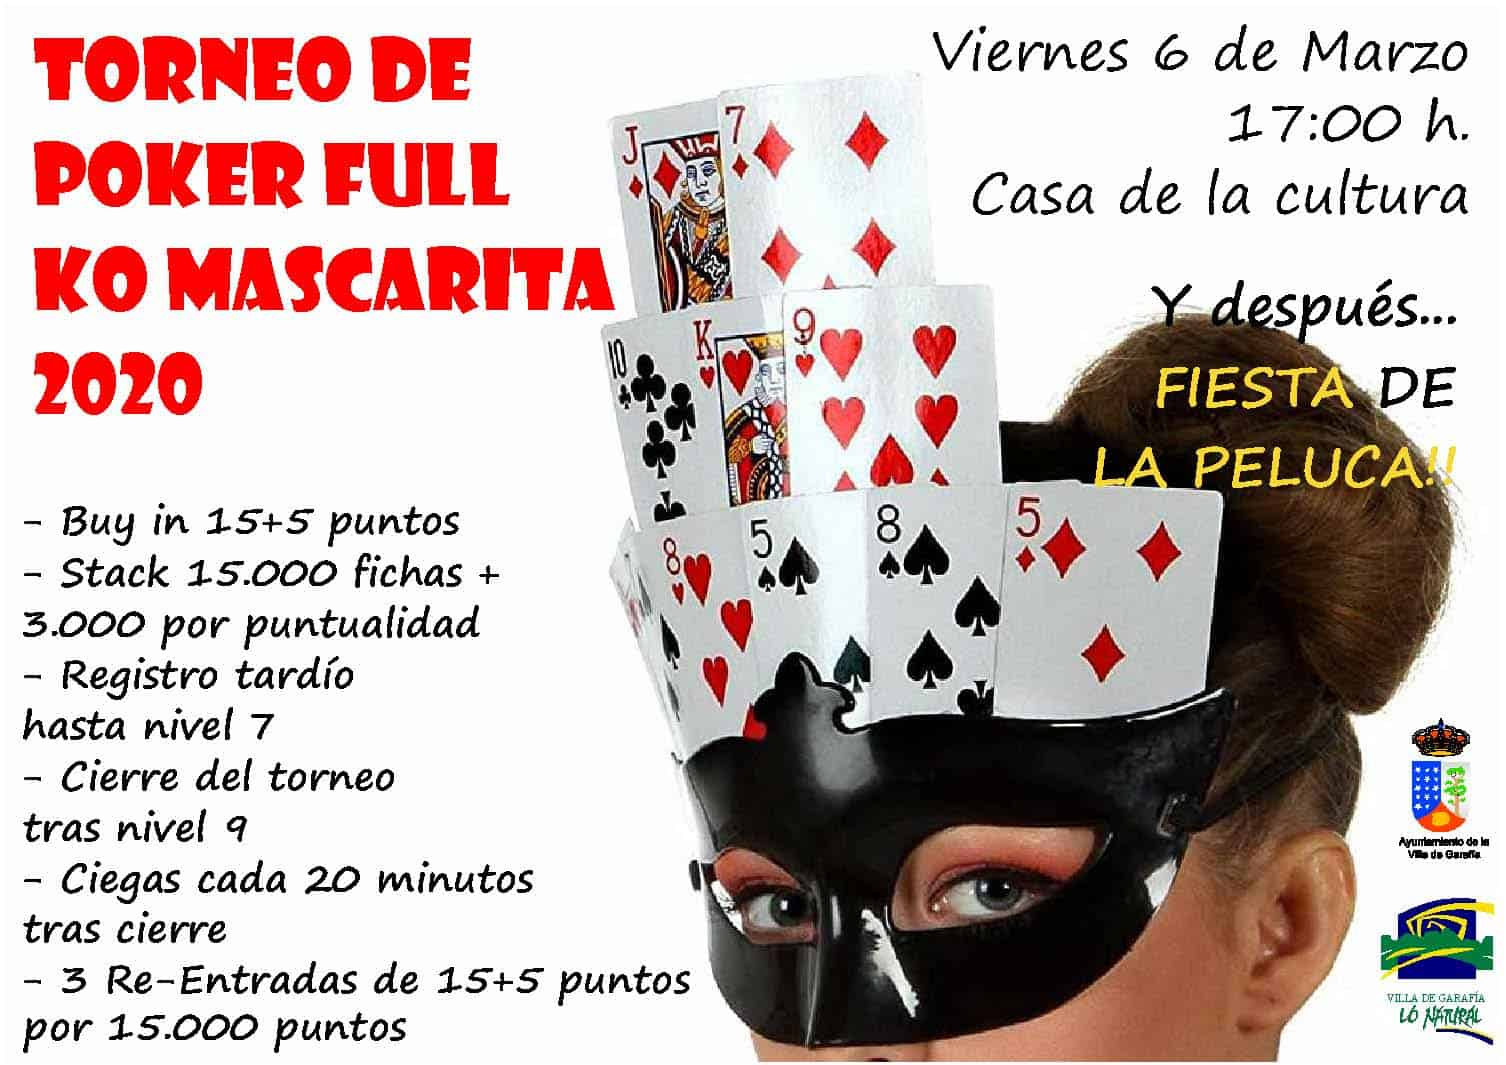 Torneo de Poker Full Ko Mascarita 2020